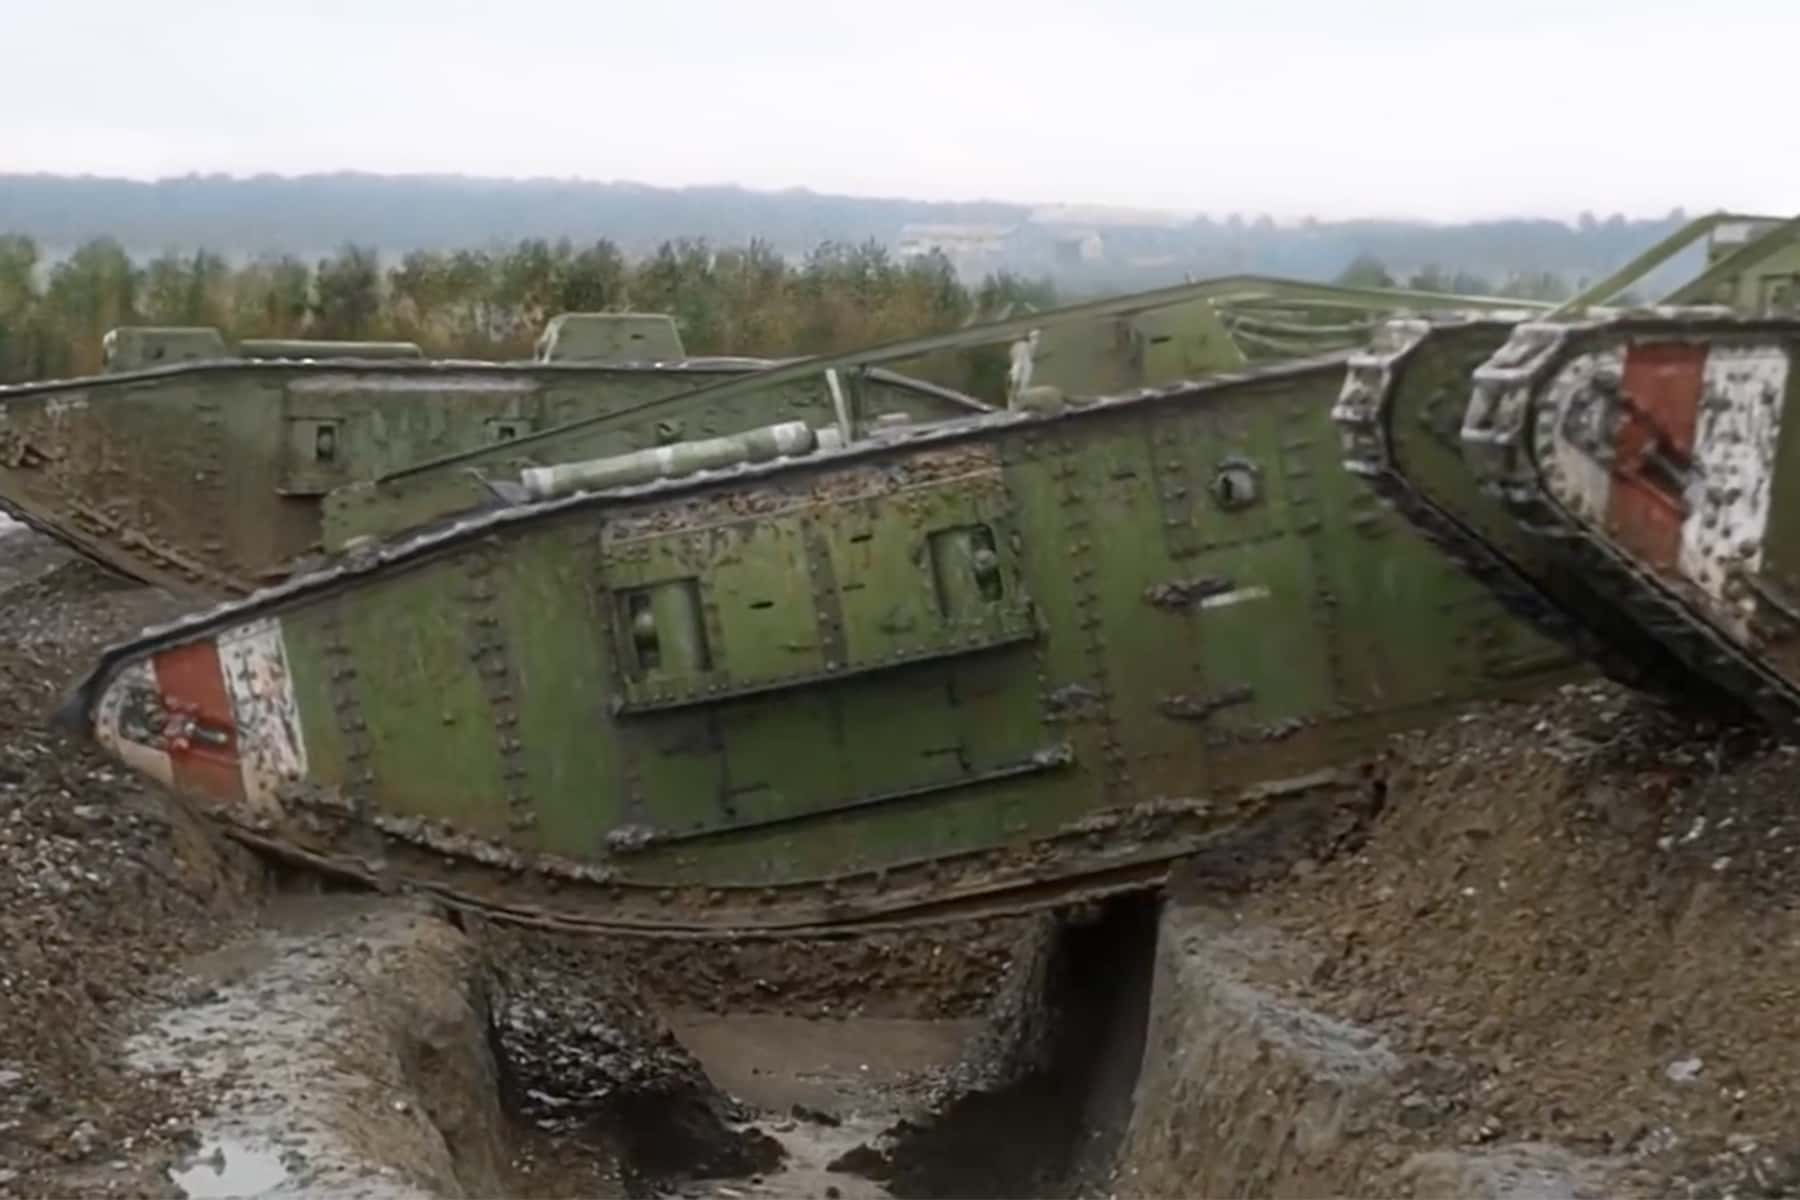 Restored trench warfare footage brings WWI memories back to life for